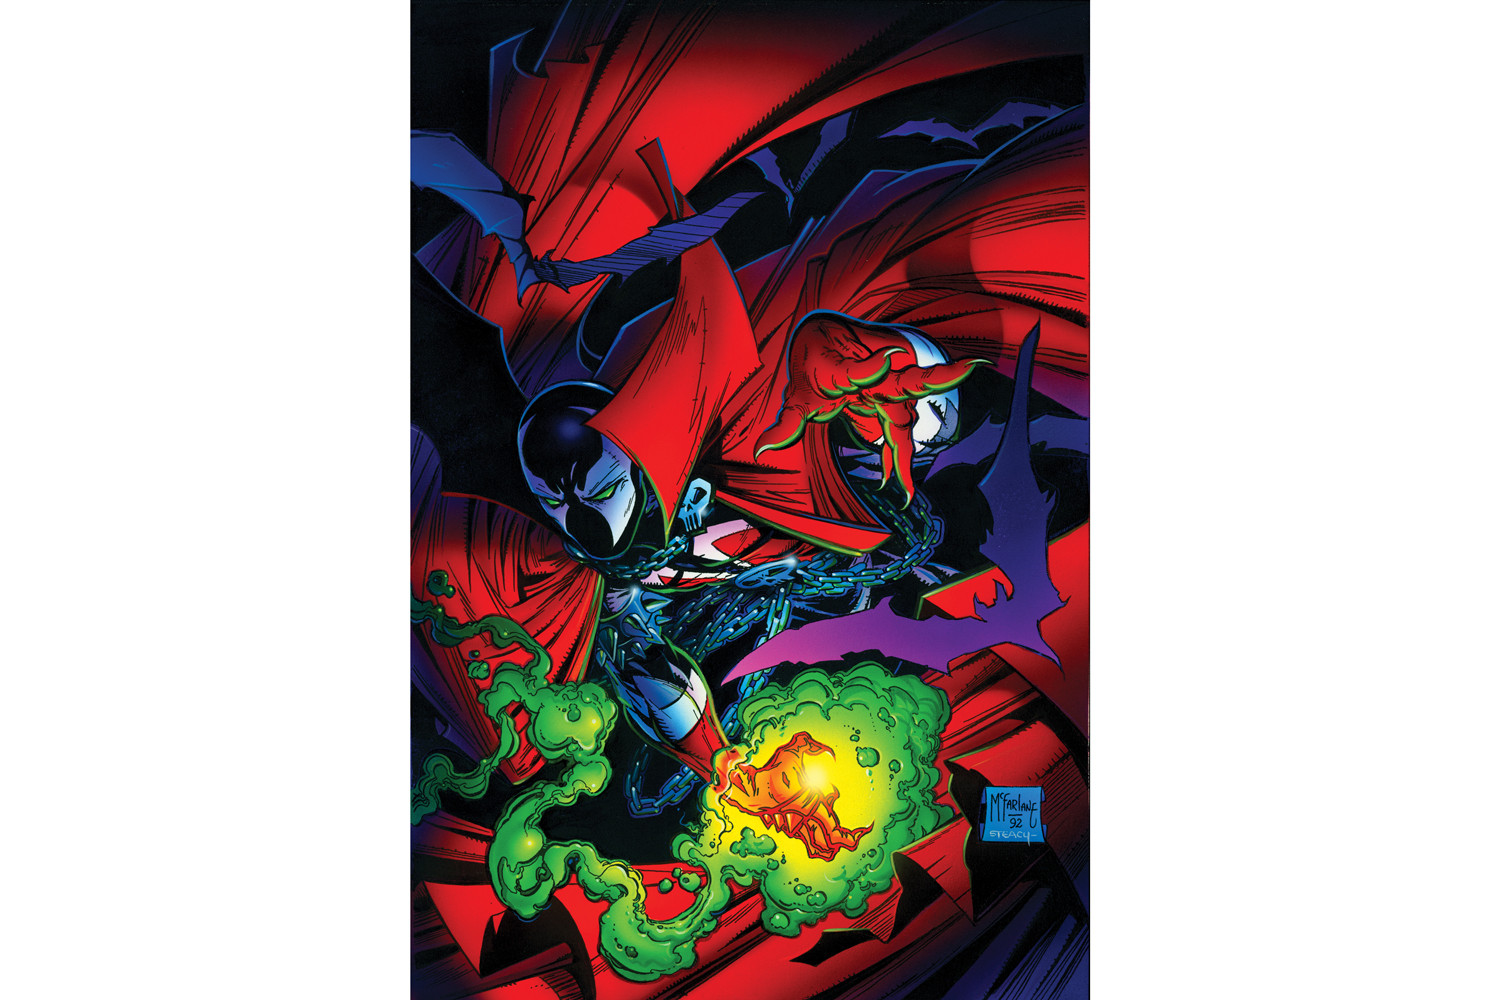 Spawn Todd McFarland Venom Interview Marvel Image Comics Sony Jamie Foxxx Blumhouse Jason Blum Art Comics Toys